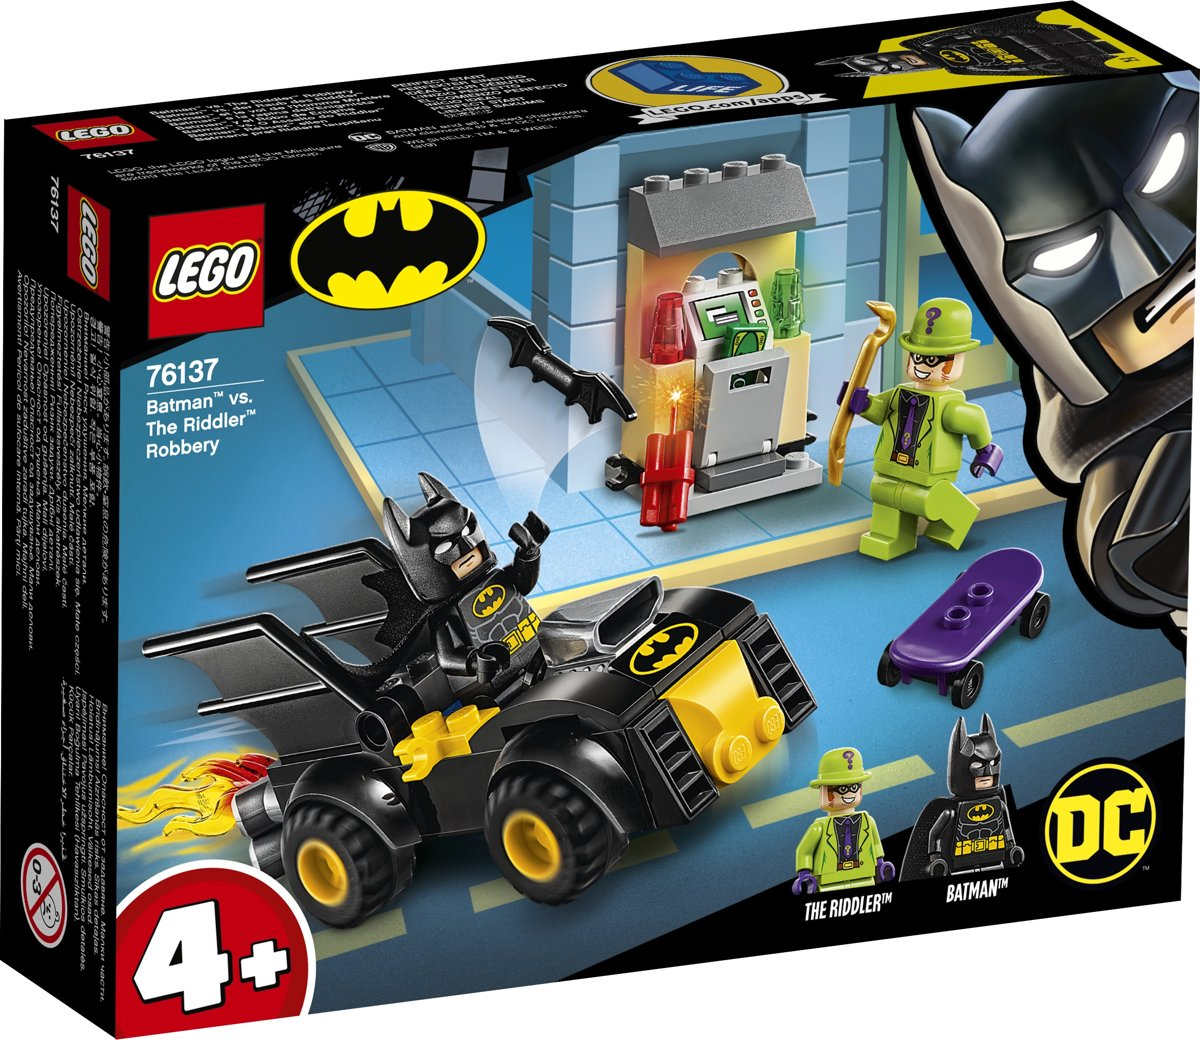 LEGO 4+ Batman vs. de Roof van The Riddler - 76137